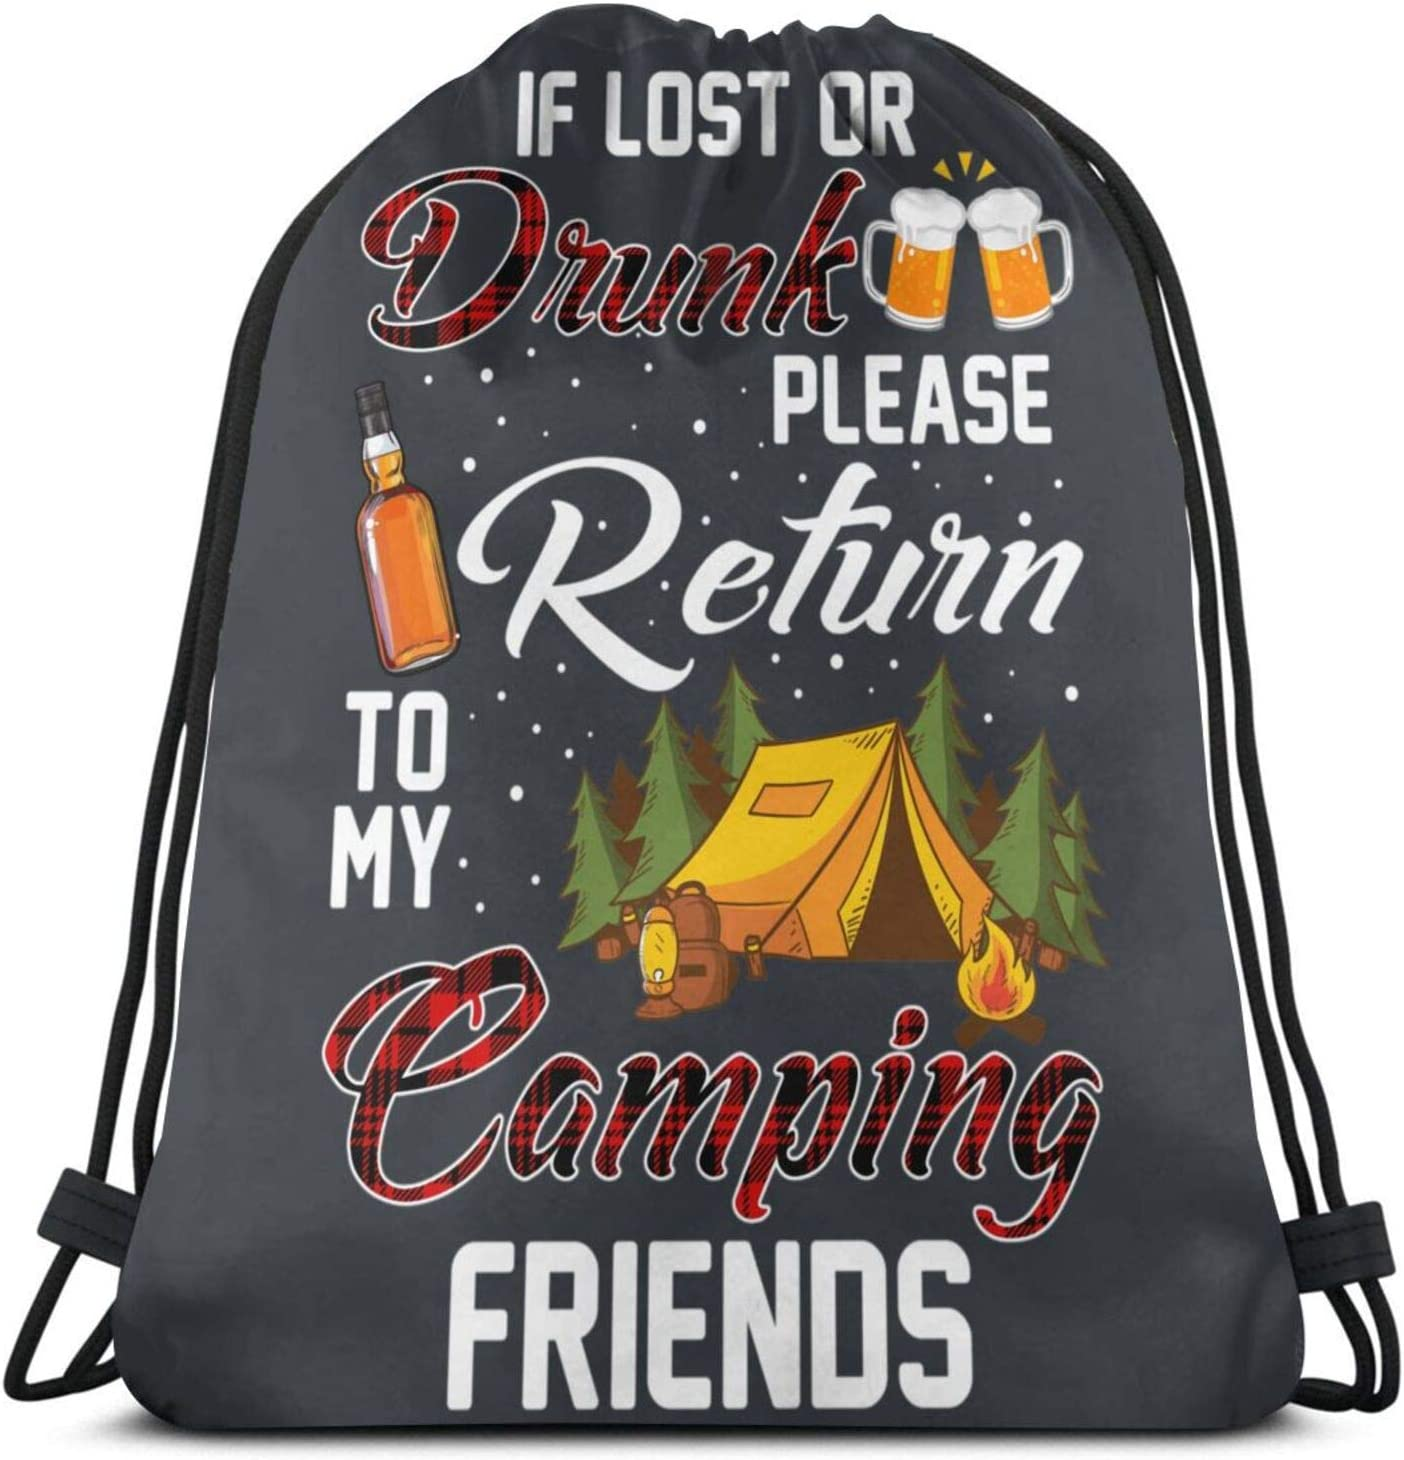 If Lost Or Drunk Please Return To My Camping Pullover Hoodie Drawstring Bag Sports ness Bag Travel Bag Gift Bag